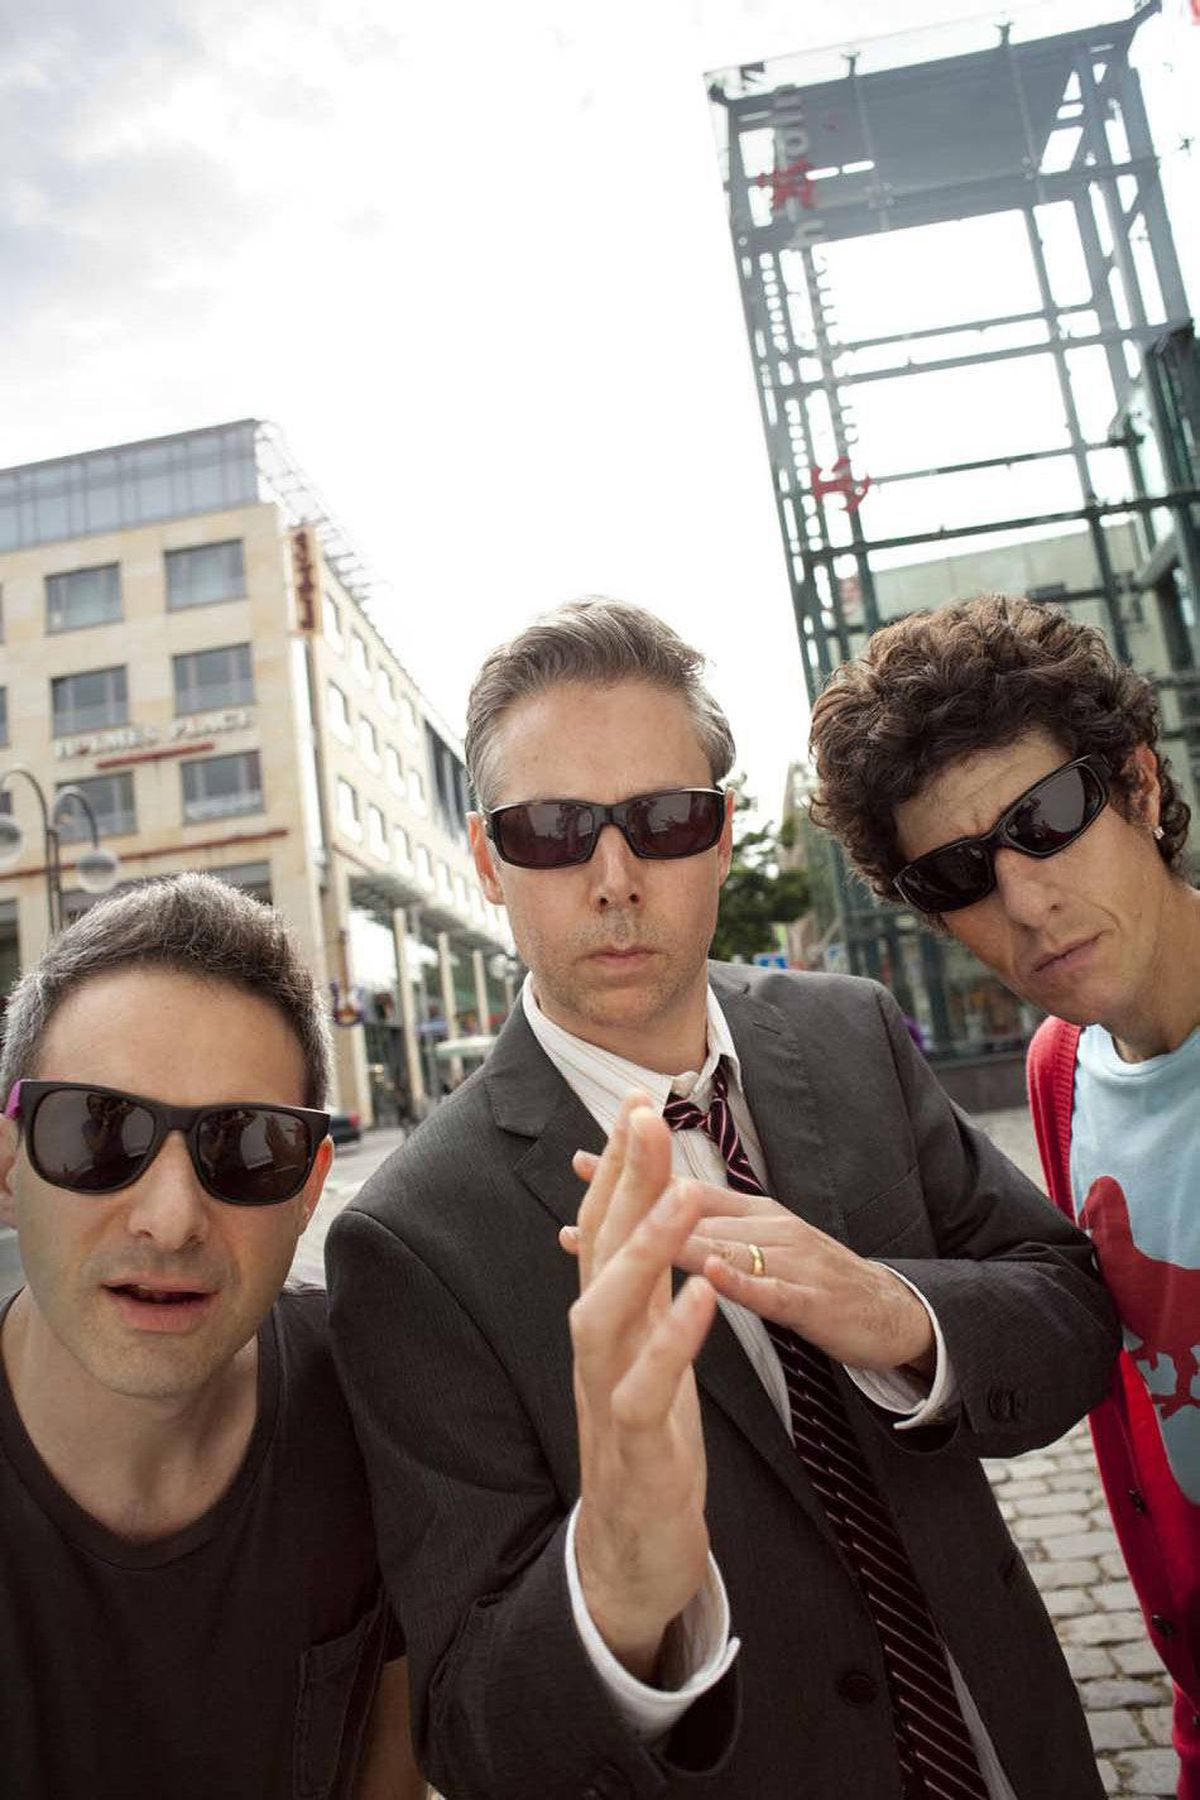 """The Beastie Boys (from left: Adam """"Ad-Rock"""" Horovitz, Adam """"MCA"""" Yauch, and Michael """"Mike D"""" Diamond) were and remain influential hip-hop artists and rockers. They were among the first bands to heavily sample other people's songs, especially on 1989's """"Paul's Boutique""""."""